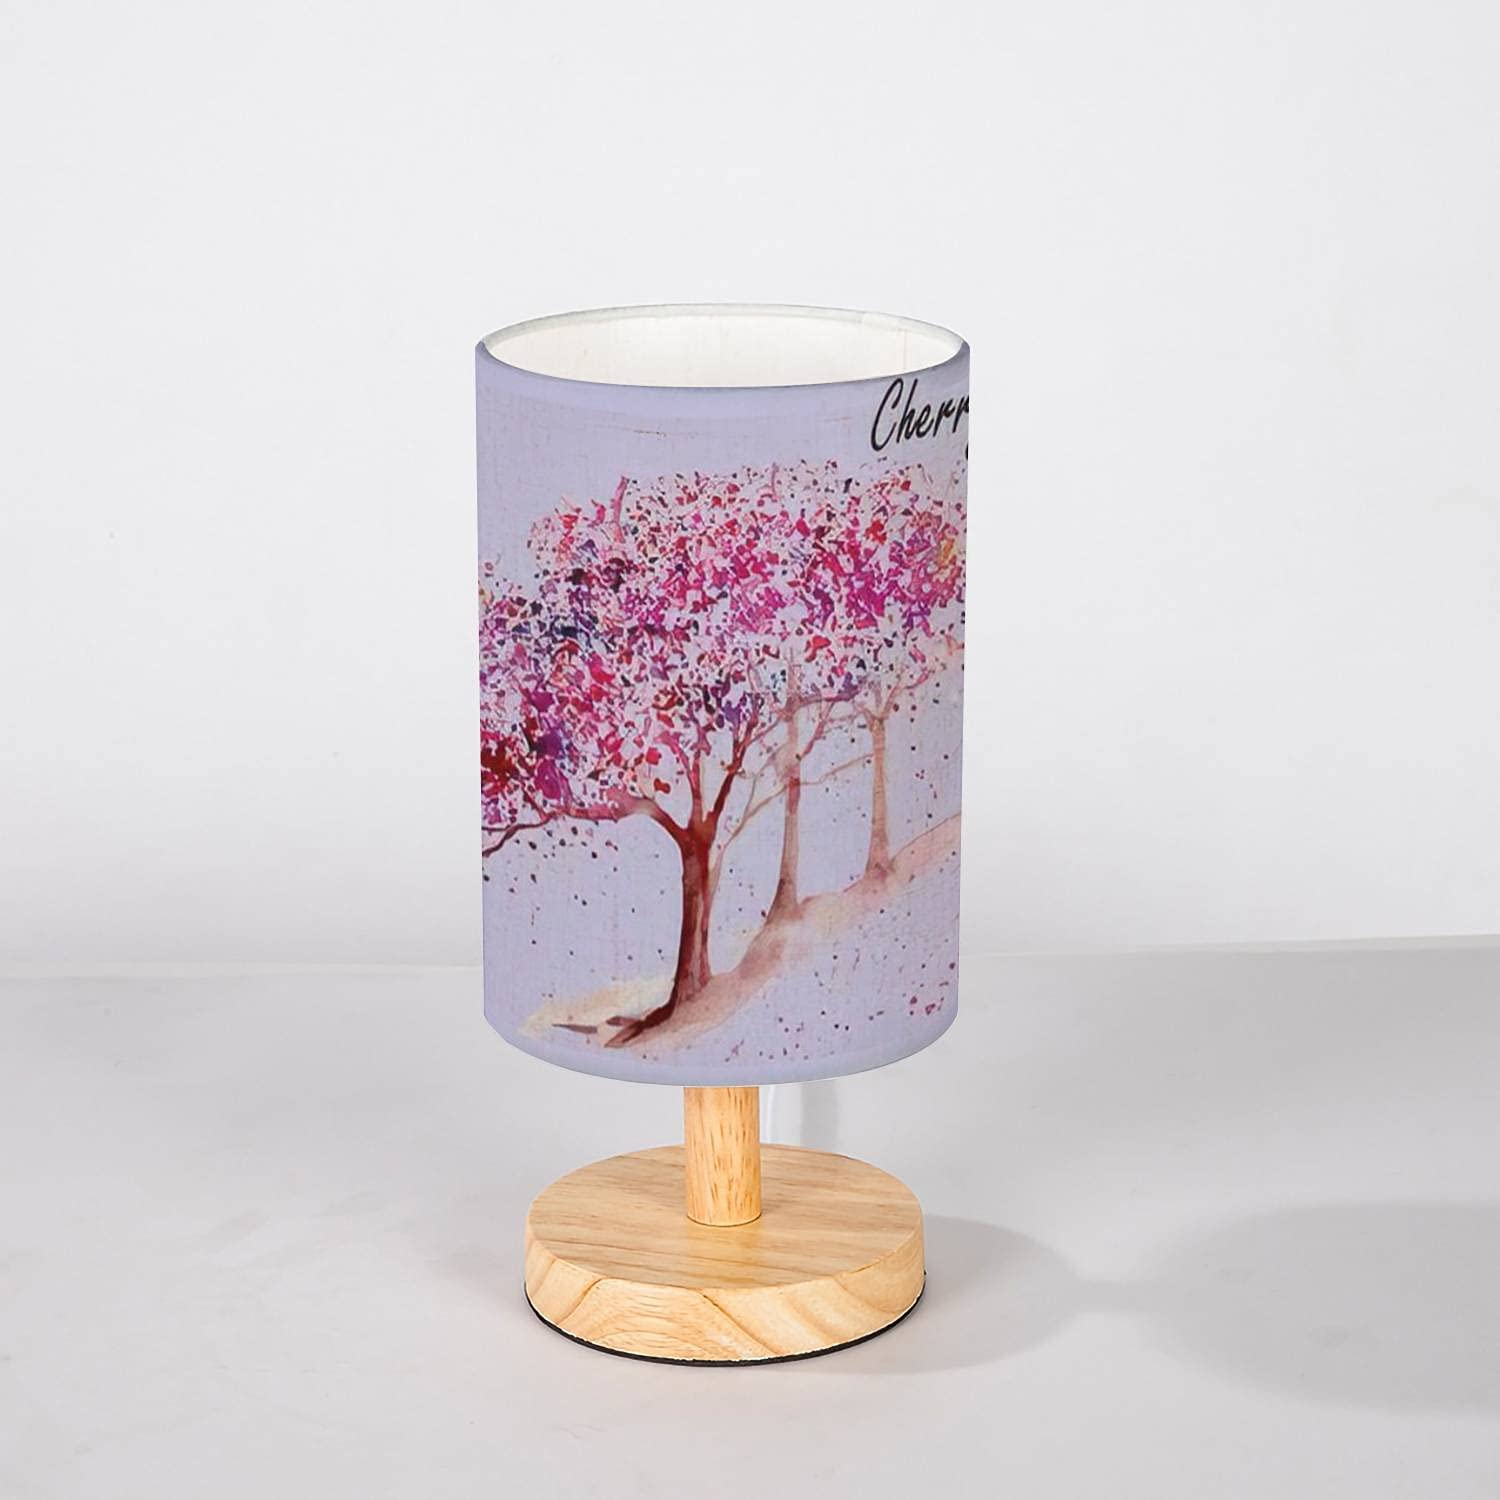 NEW before selling Minimalist Bedside Table Lamp Cherry Drawn Trees Hand Watercolor Popular standard